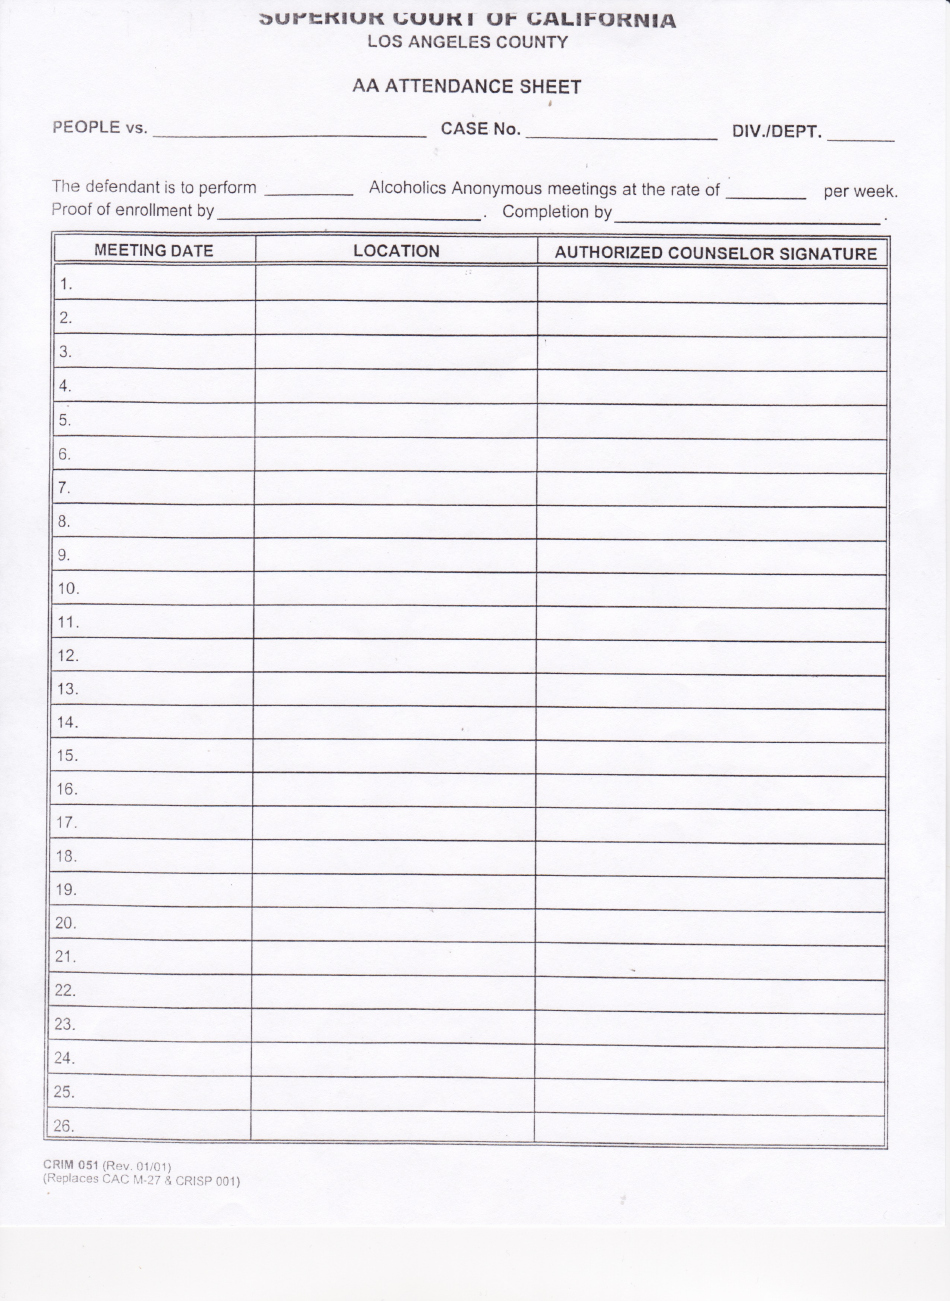 Aa Sign In Sheets Fresh Aa Meeting Sign In Sheet for Court